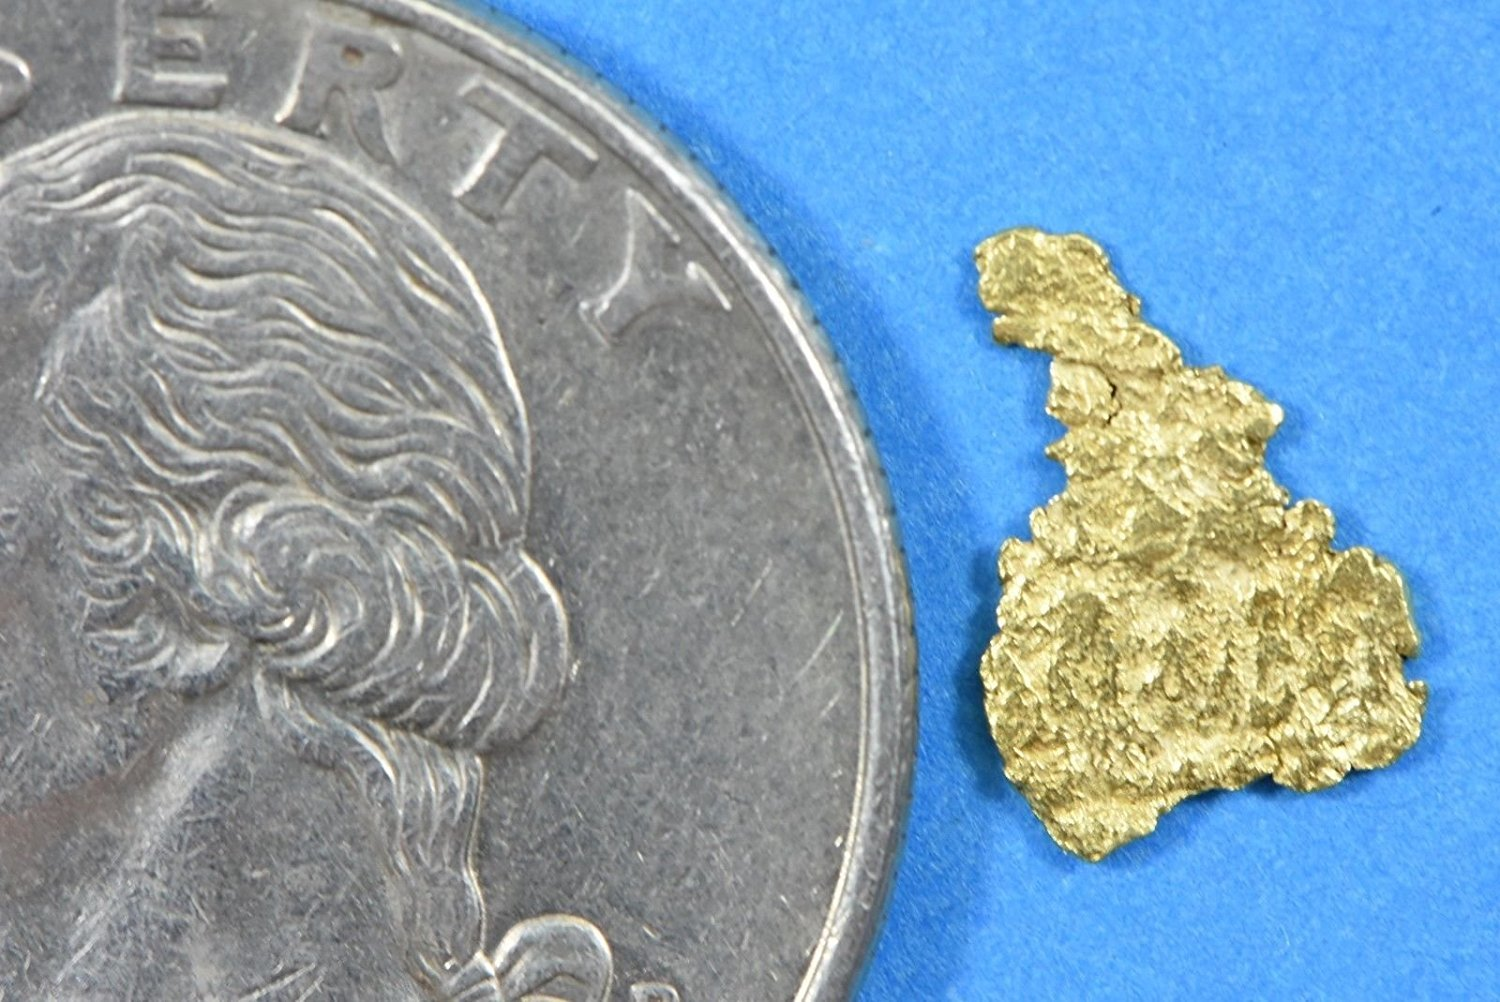 Alaskan-Yukon Bc Gold Rush Natural Nugget 0.13 Grams Genuine Alaska .10-.34